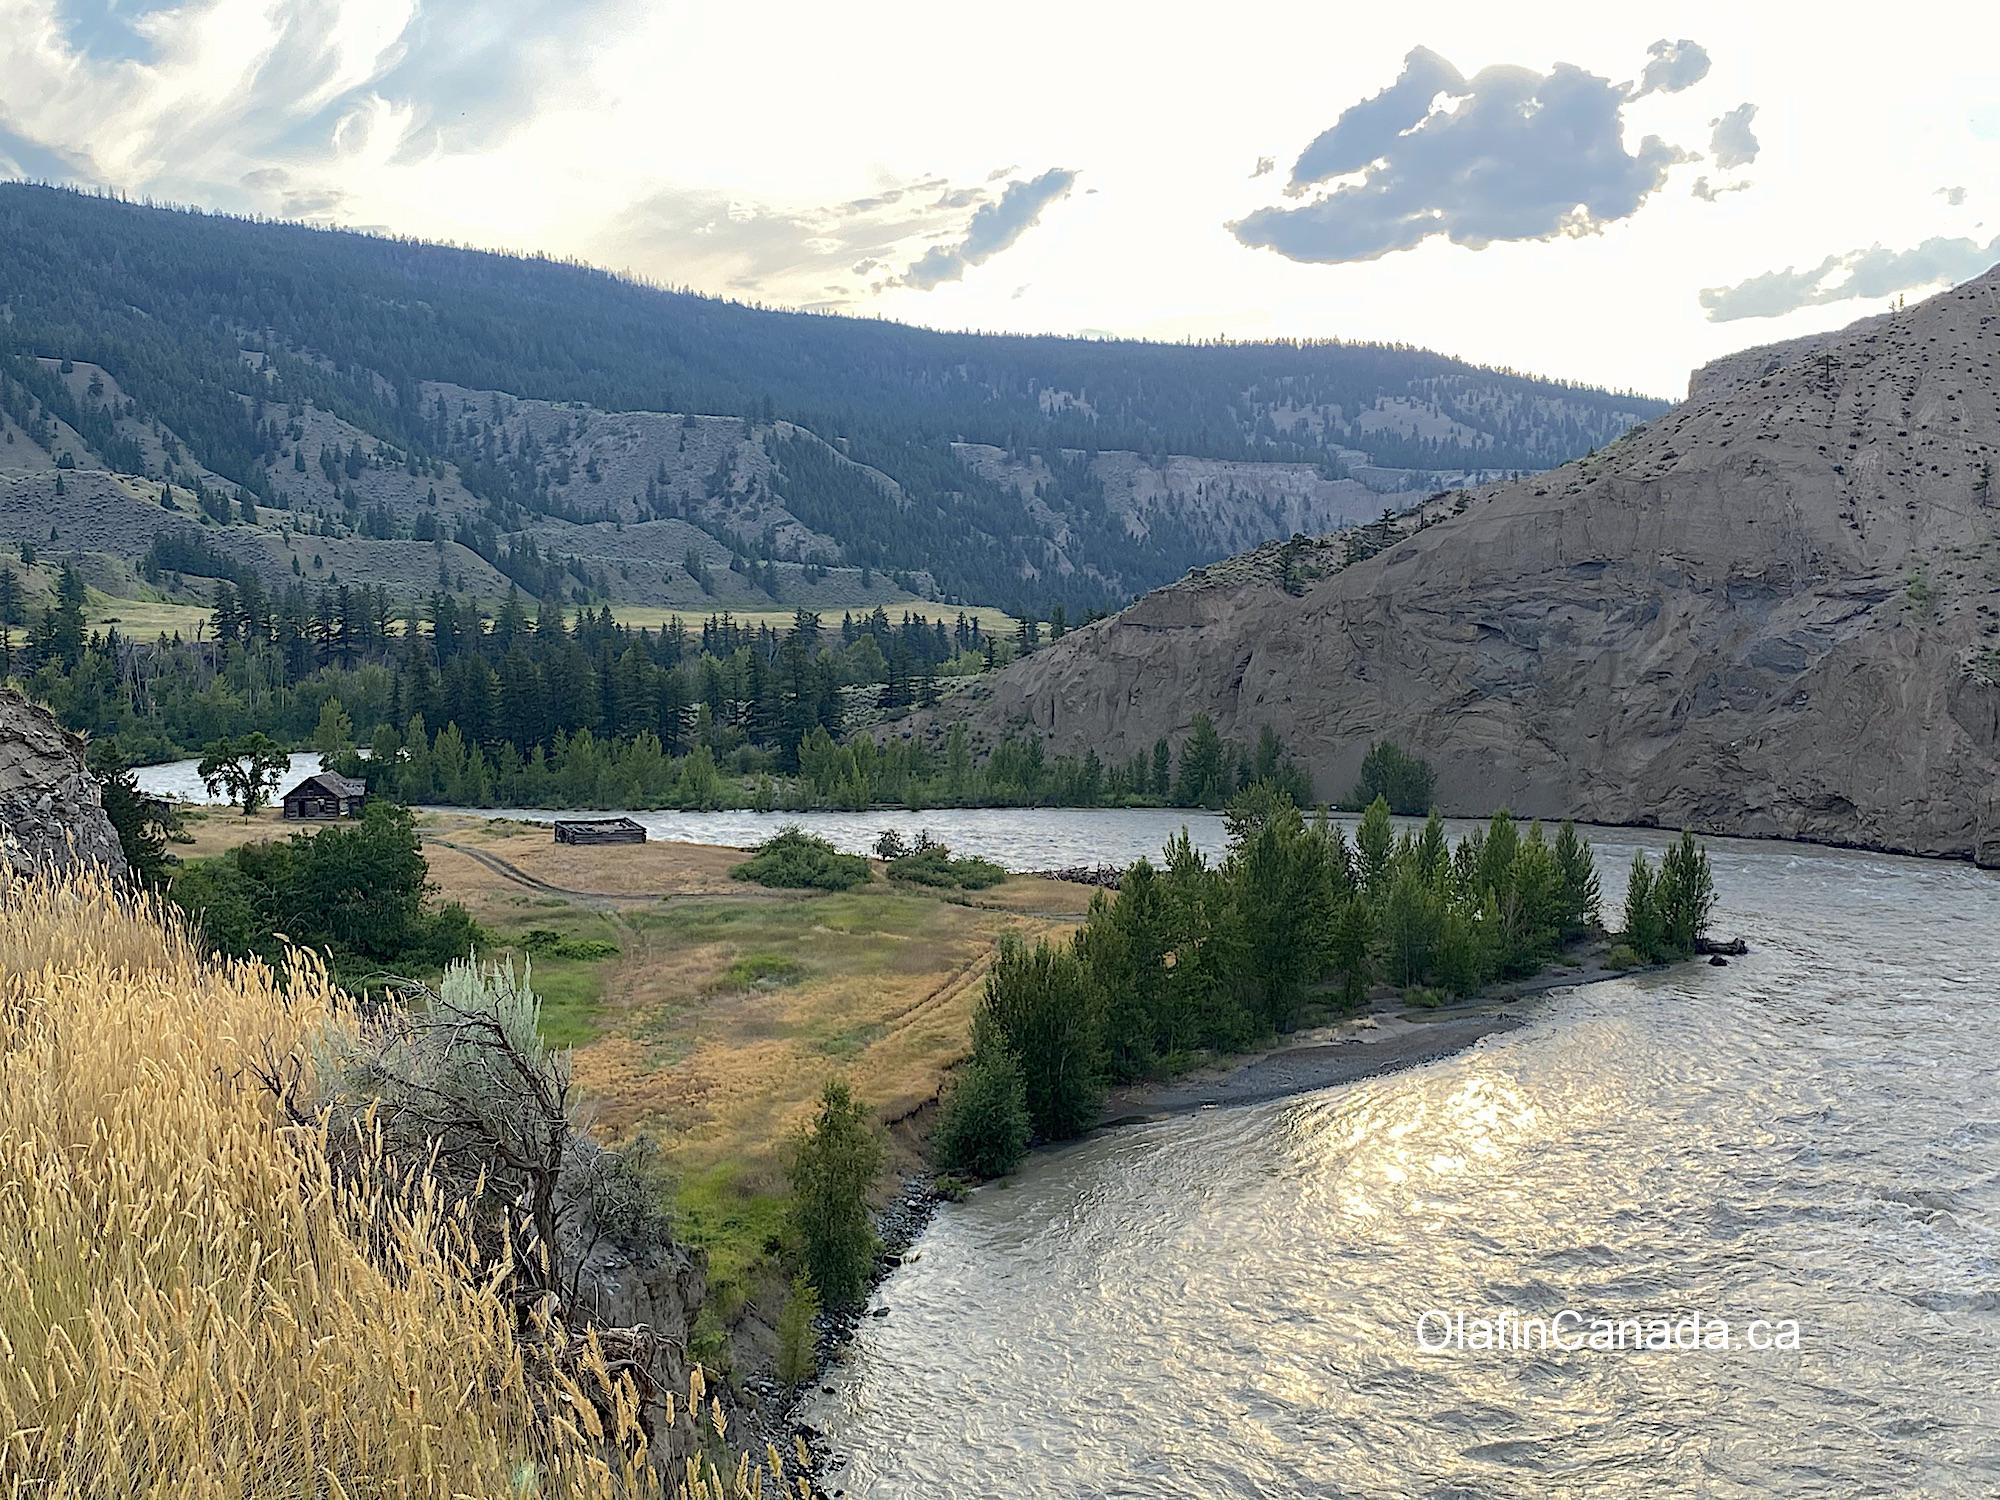 Overview of the Farwell Canyon with the Pothole Ranch in the middle #olafincanada #britishcolumbia #discoverbc #abandonedbc #chilcotin #farwellcanyon #potholeranch #homestead